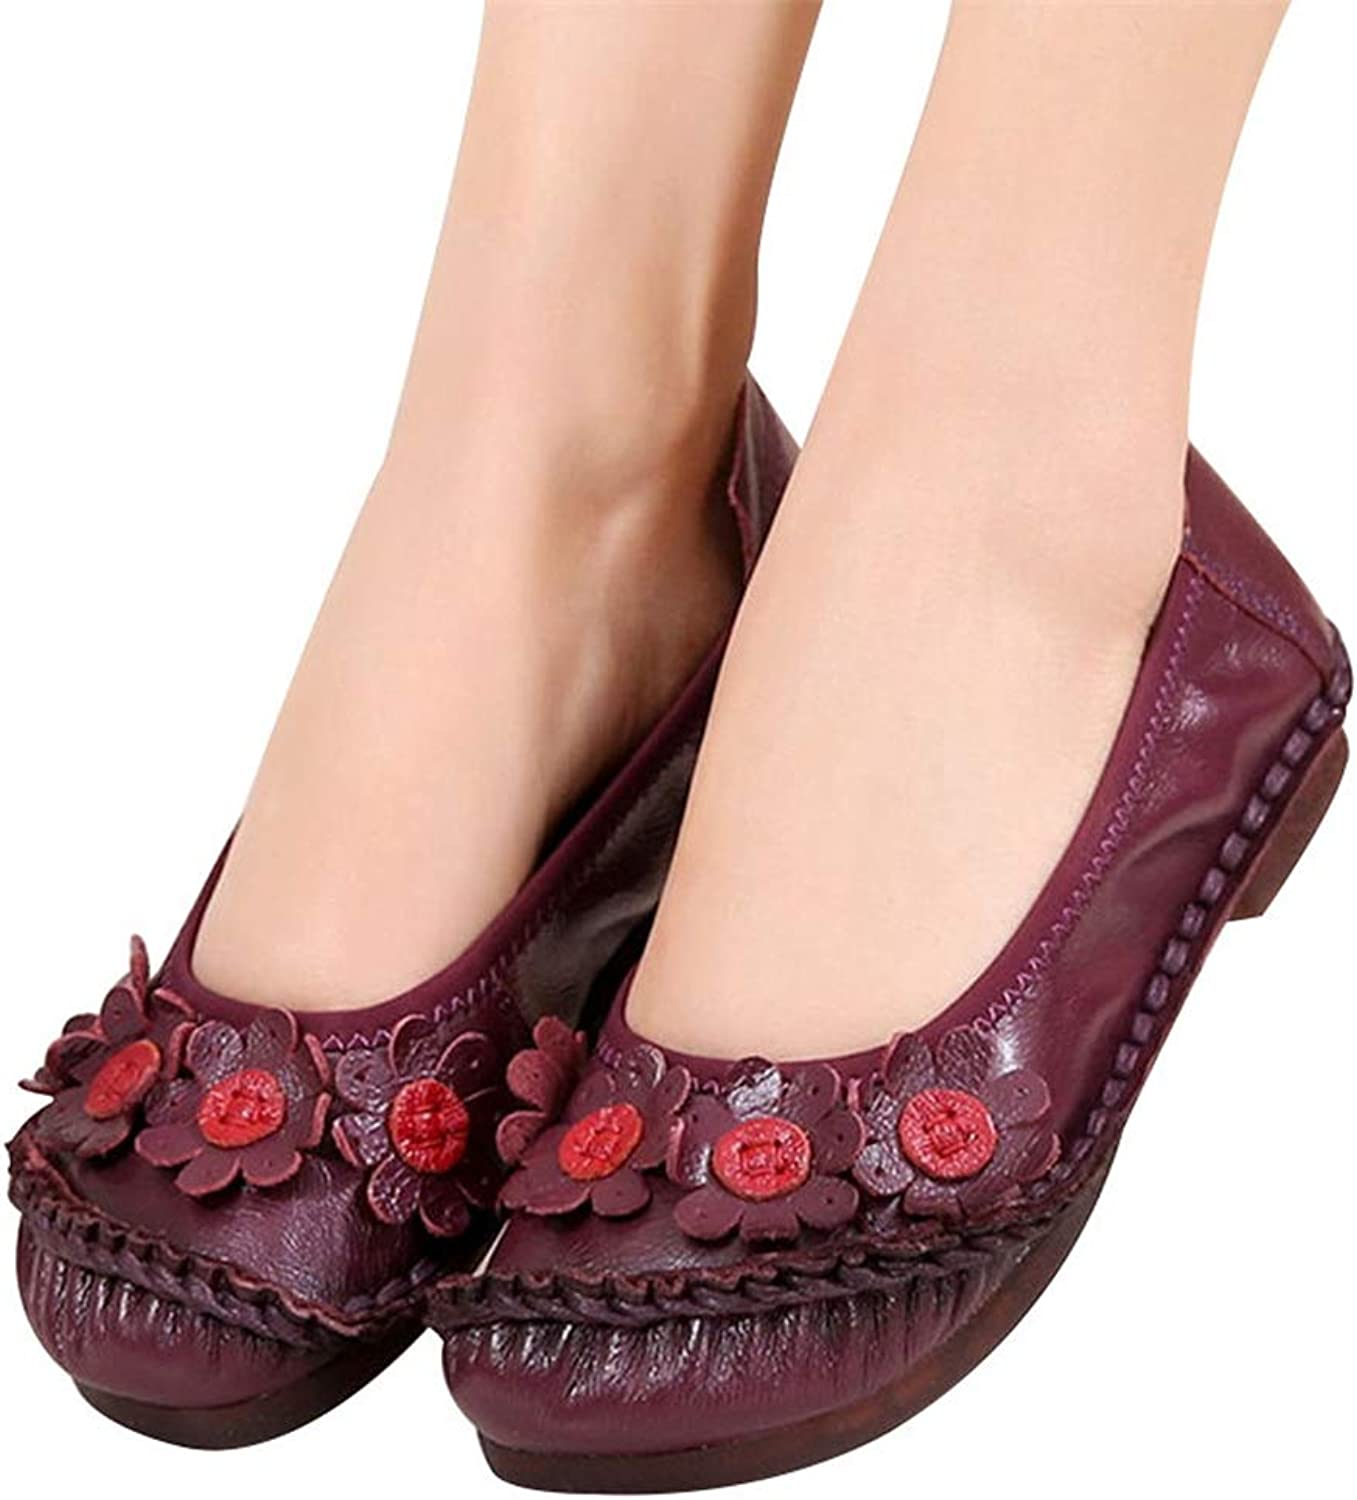 T-JULY Women Flats Handmade Casual shoes Woman Flower Genuine Leather Flat shoes Ballet Flats Women Loafers